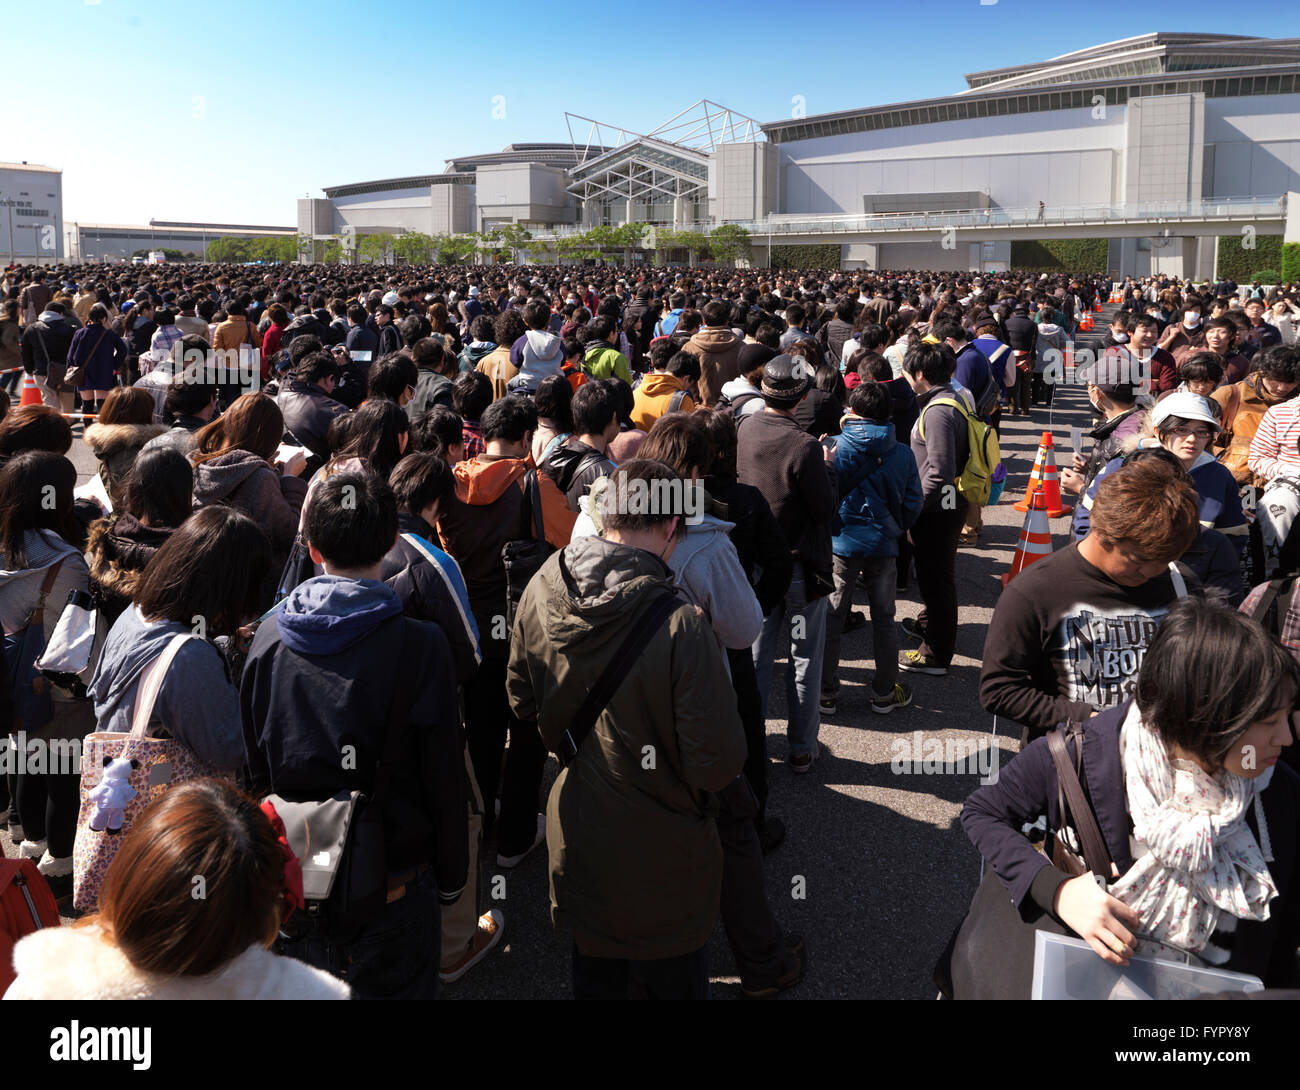 People queueing at Tokyo Big Sight, or Tokyo International Exhibition Center, during Anime Fair, Tokyo, Japan Stock Photo